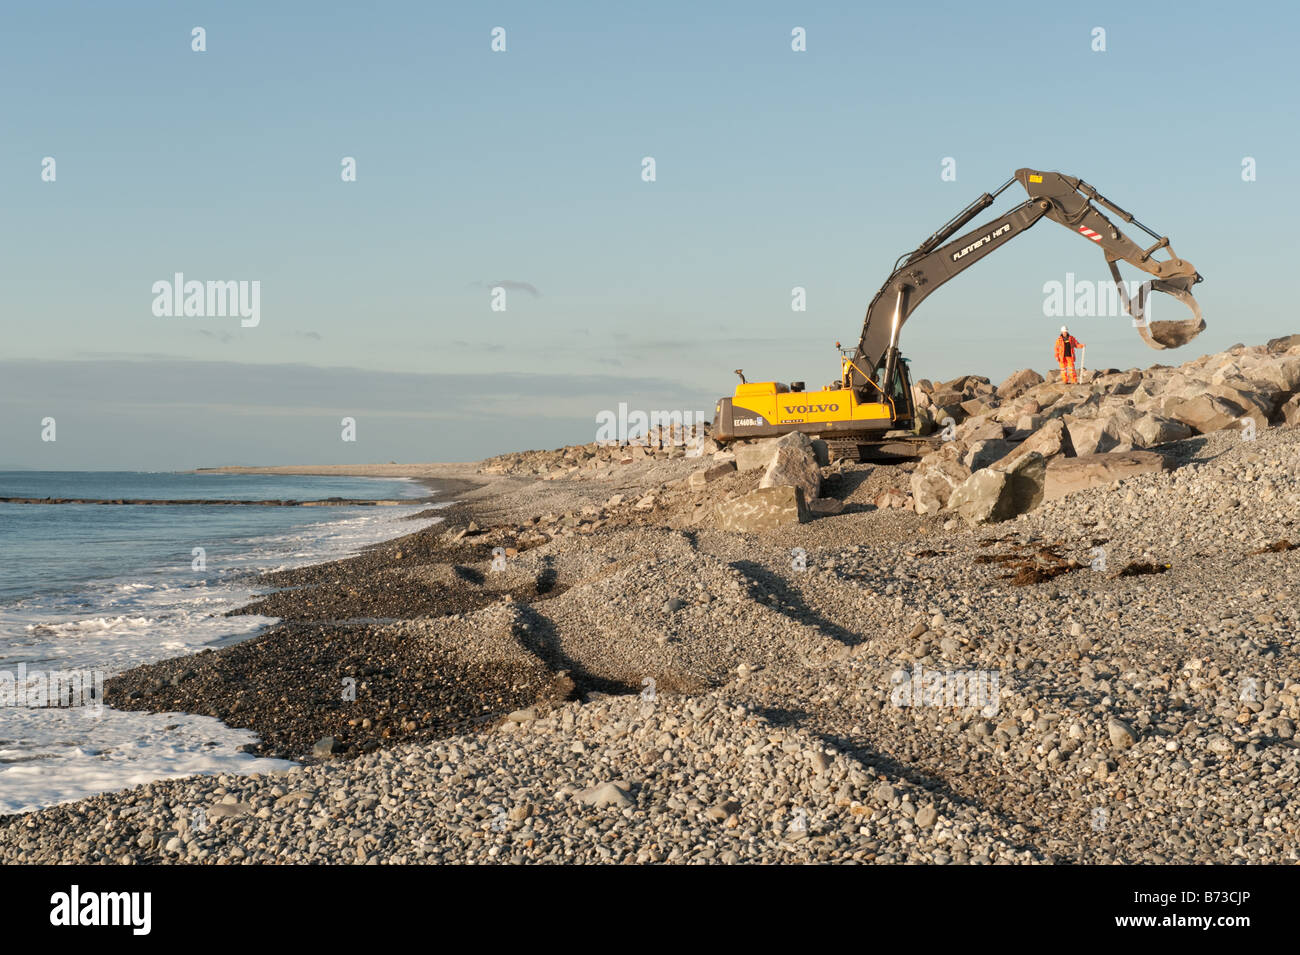 Mechanical JCB digger placing large boulders repairing the sea defences on the beach at Tywyn Gwynedd north wales - Stock Image